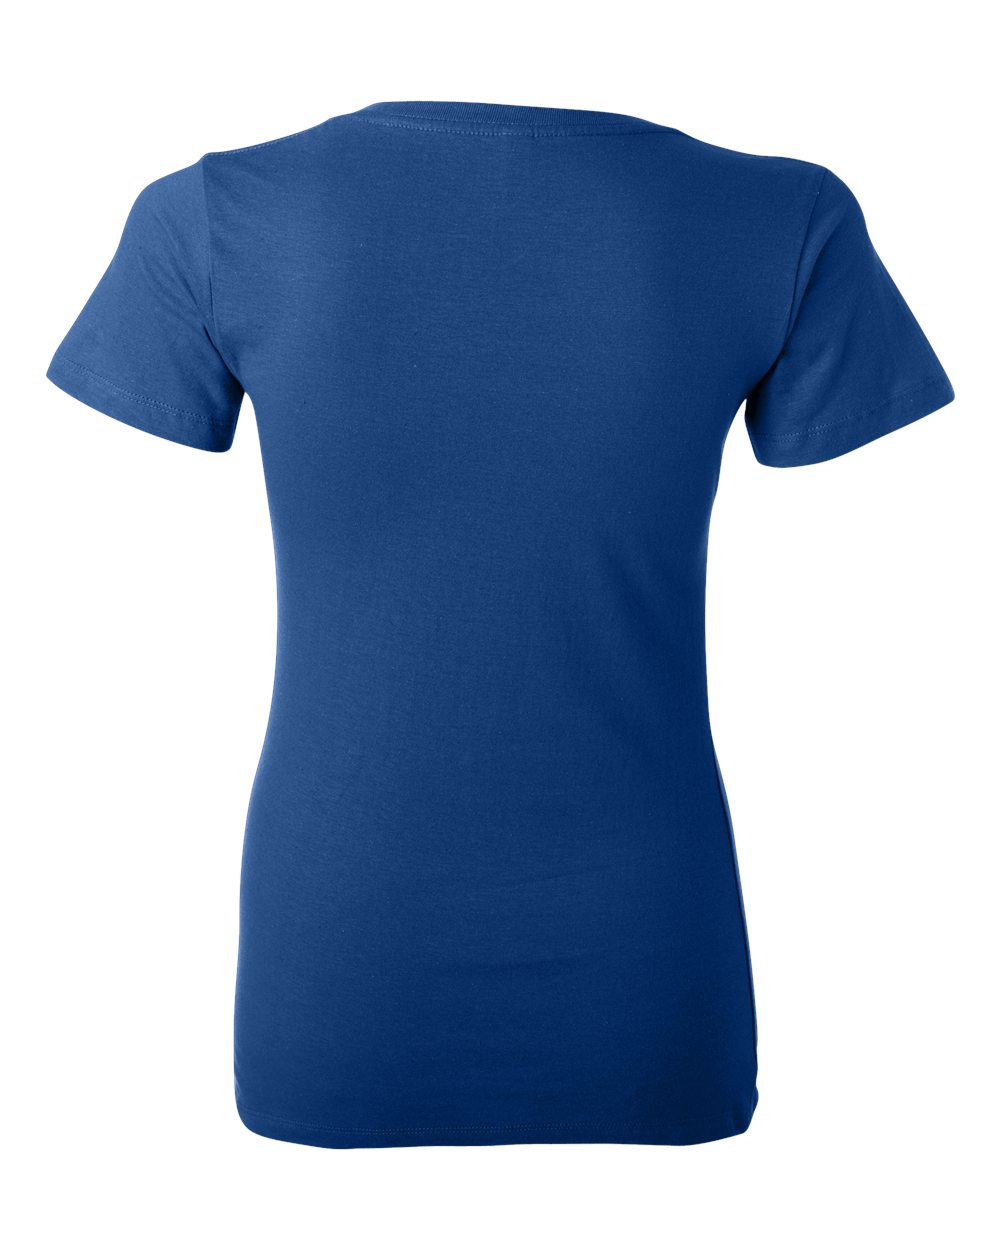 Bella-Canvas-Women-039-s-Jersey-Short-Sleeve-Deep-V-Neck-T-Shirt-B6035-S-2XL thumbnail 40